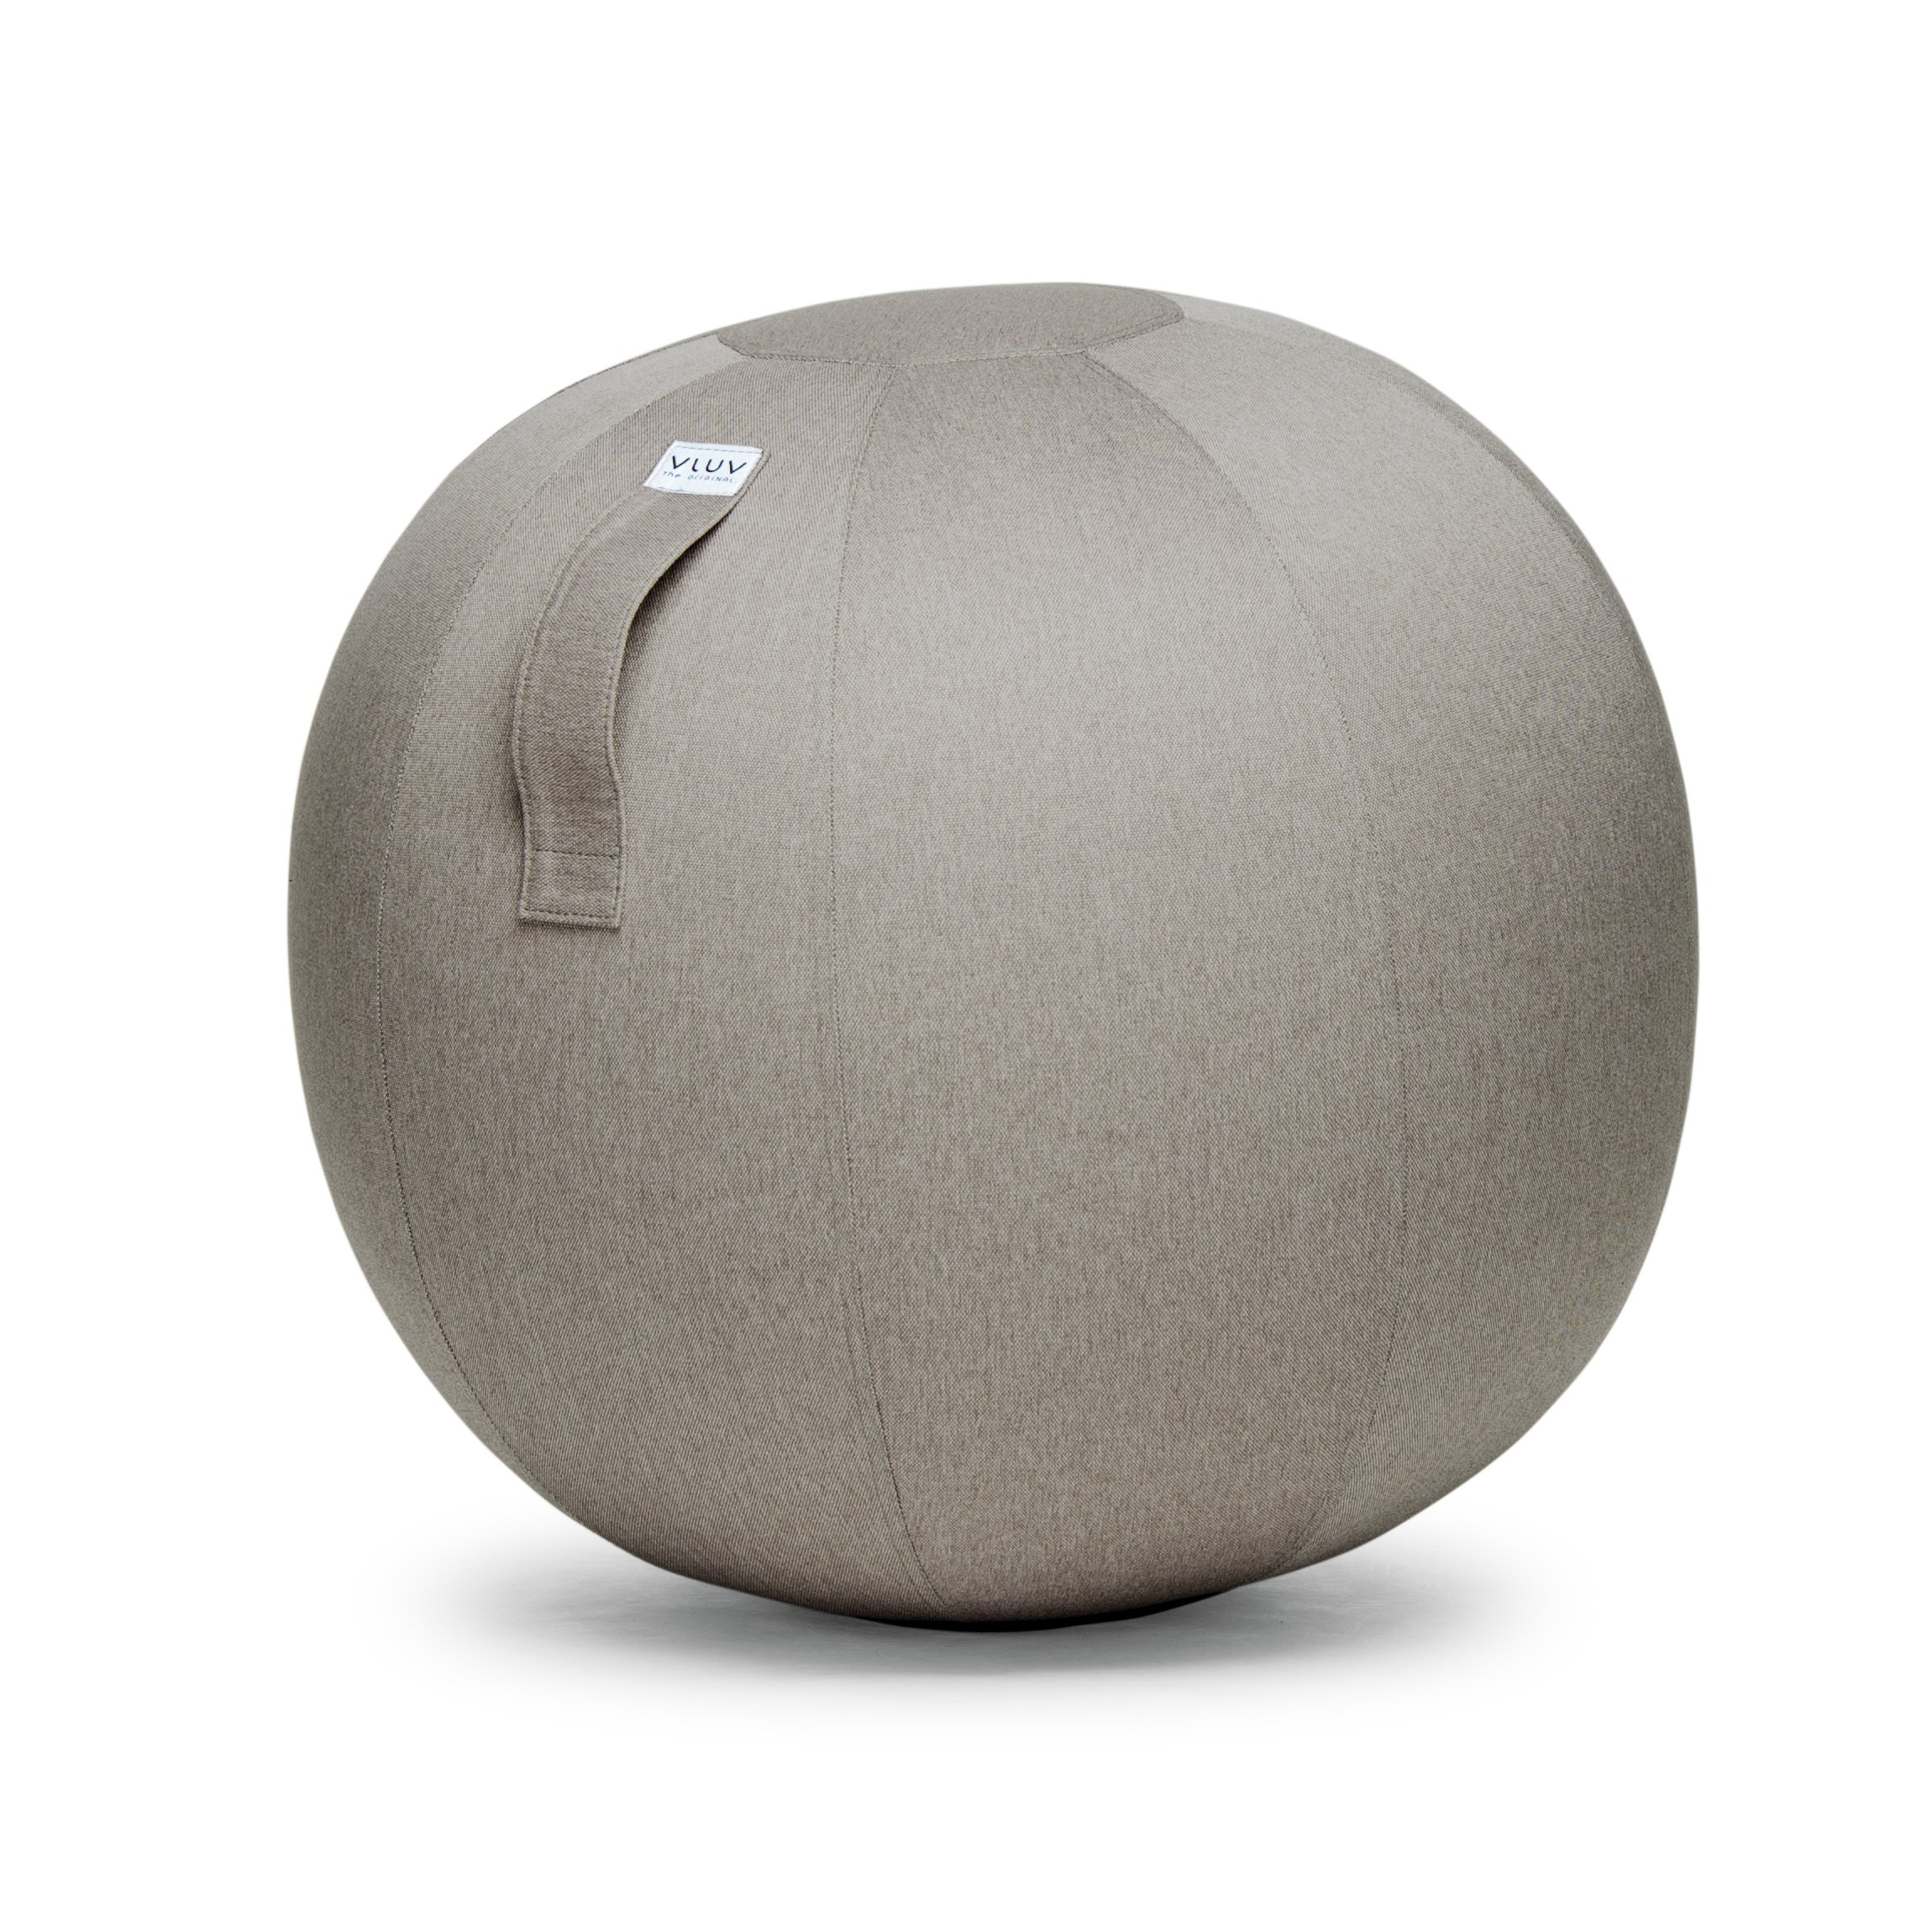 VLUV LEIV 29.5'' Premium Quality Self-Standing Sitting Ball with Handle - Home or Office Chair and Exercise Ball for Yoga, Stretching, or Gym Stone Colored Canvas Fabric (Stone Colored, 25.6'')